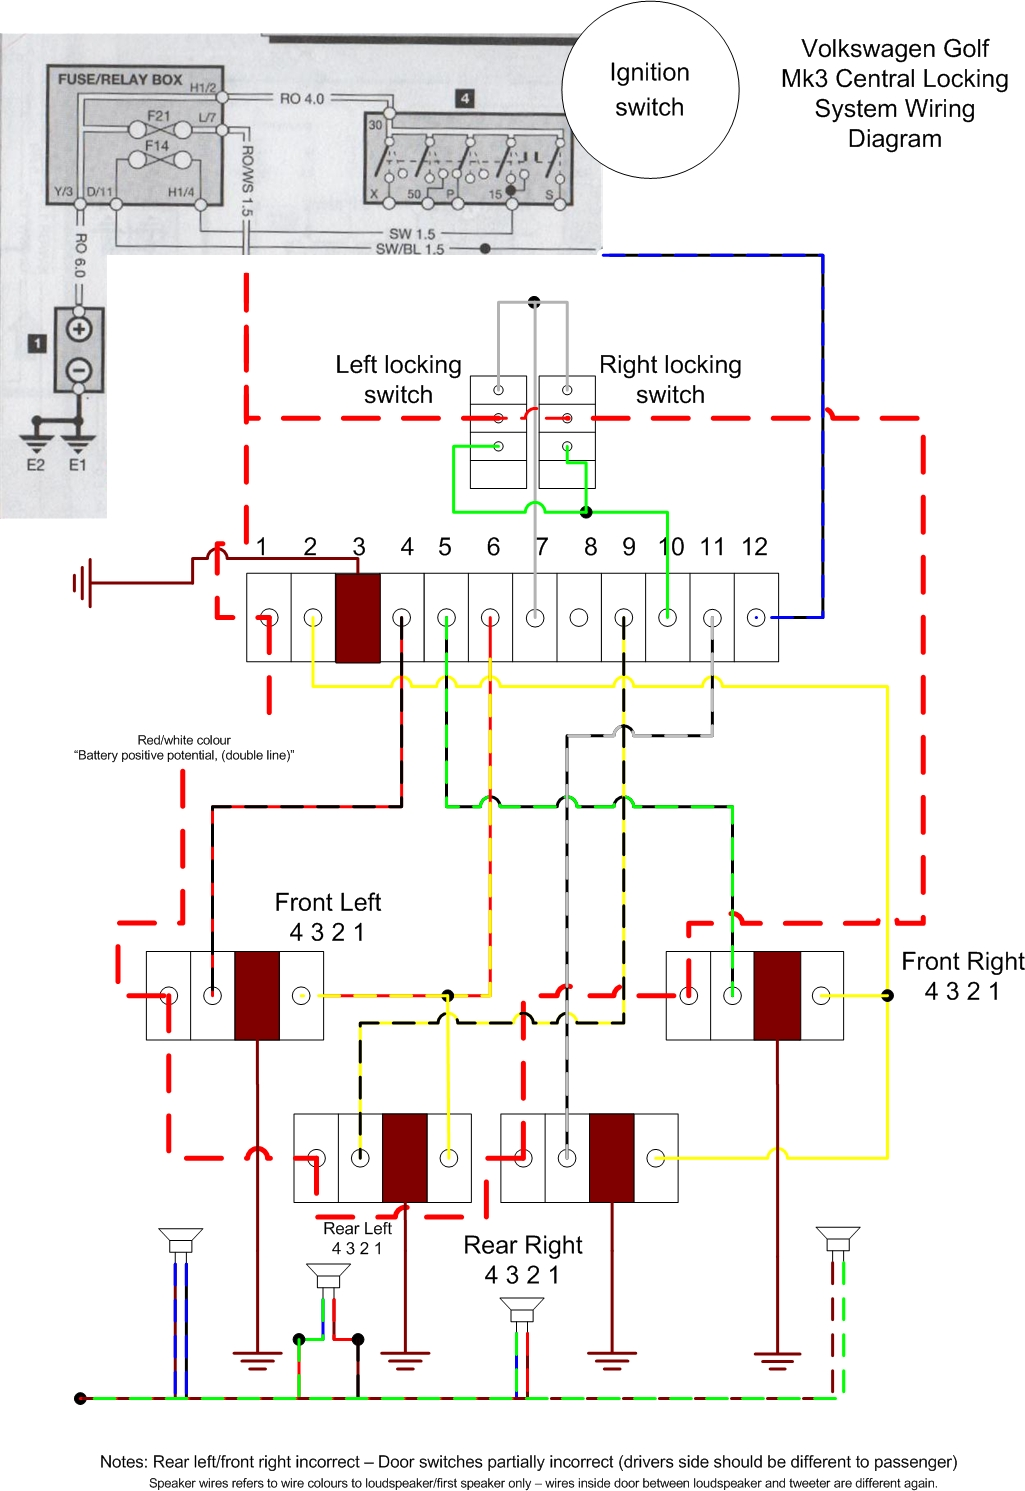 Wiring Diagram Skoda Octavia 2005 - Data Wiring Diagram Today on seat octavia, vinyl and octavia, i am octavia,